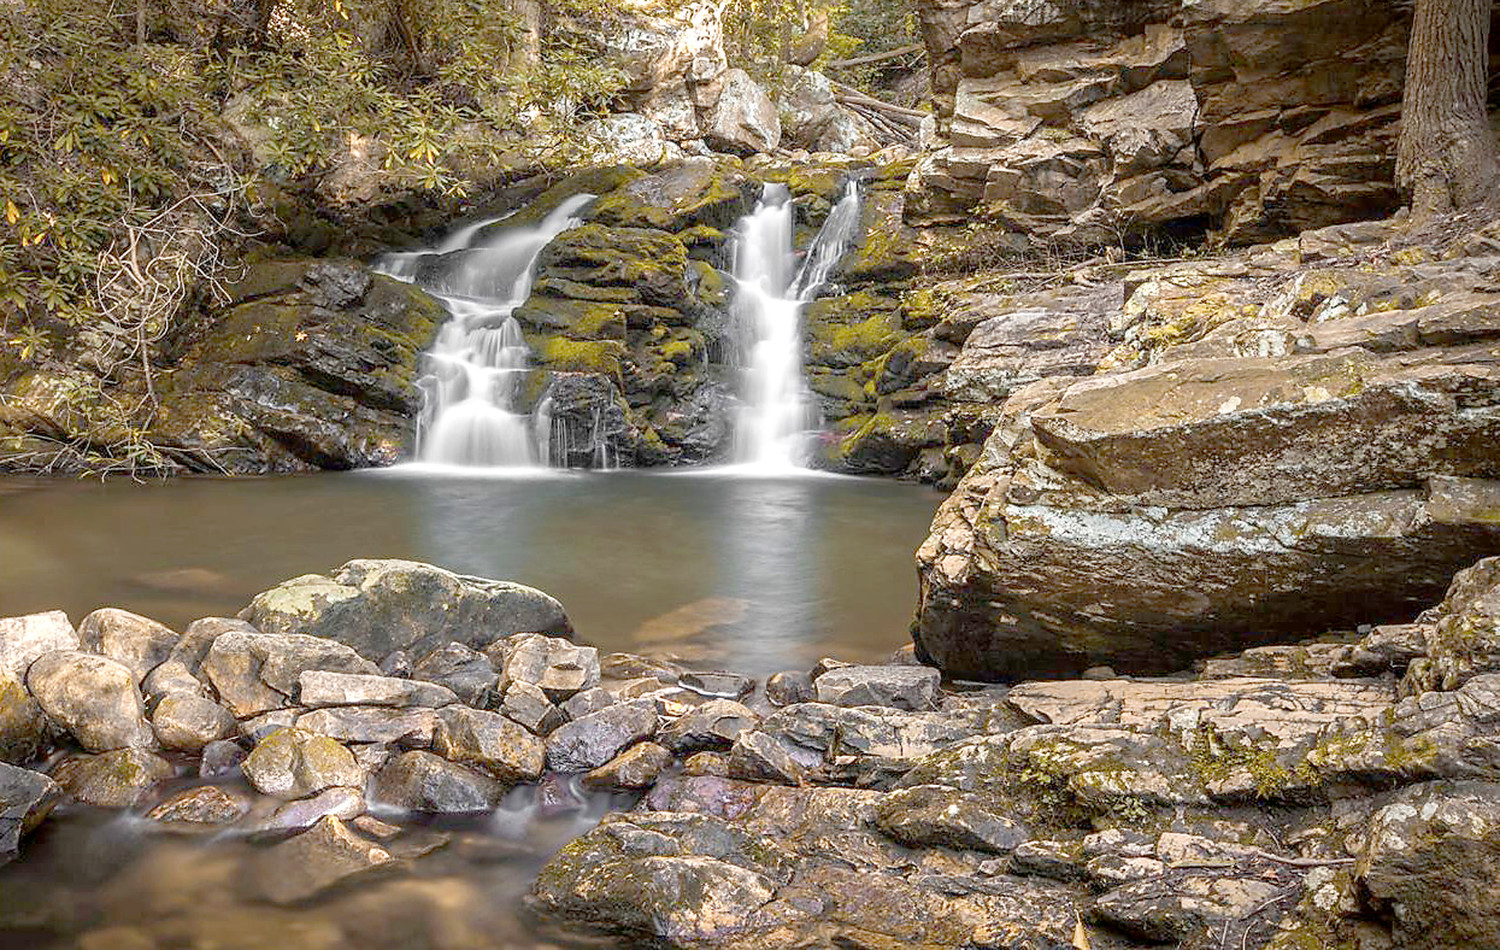 THE LOOKOUT WILD Film Festival fits in nicely in Chattanooga, as the Tennessee Valley hosts some of the most beautiful nature hikes and outdoor adventures in the world.  This waterfall from the Ocoee region is but one example of the sights in the area.